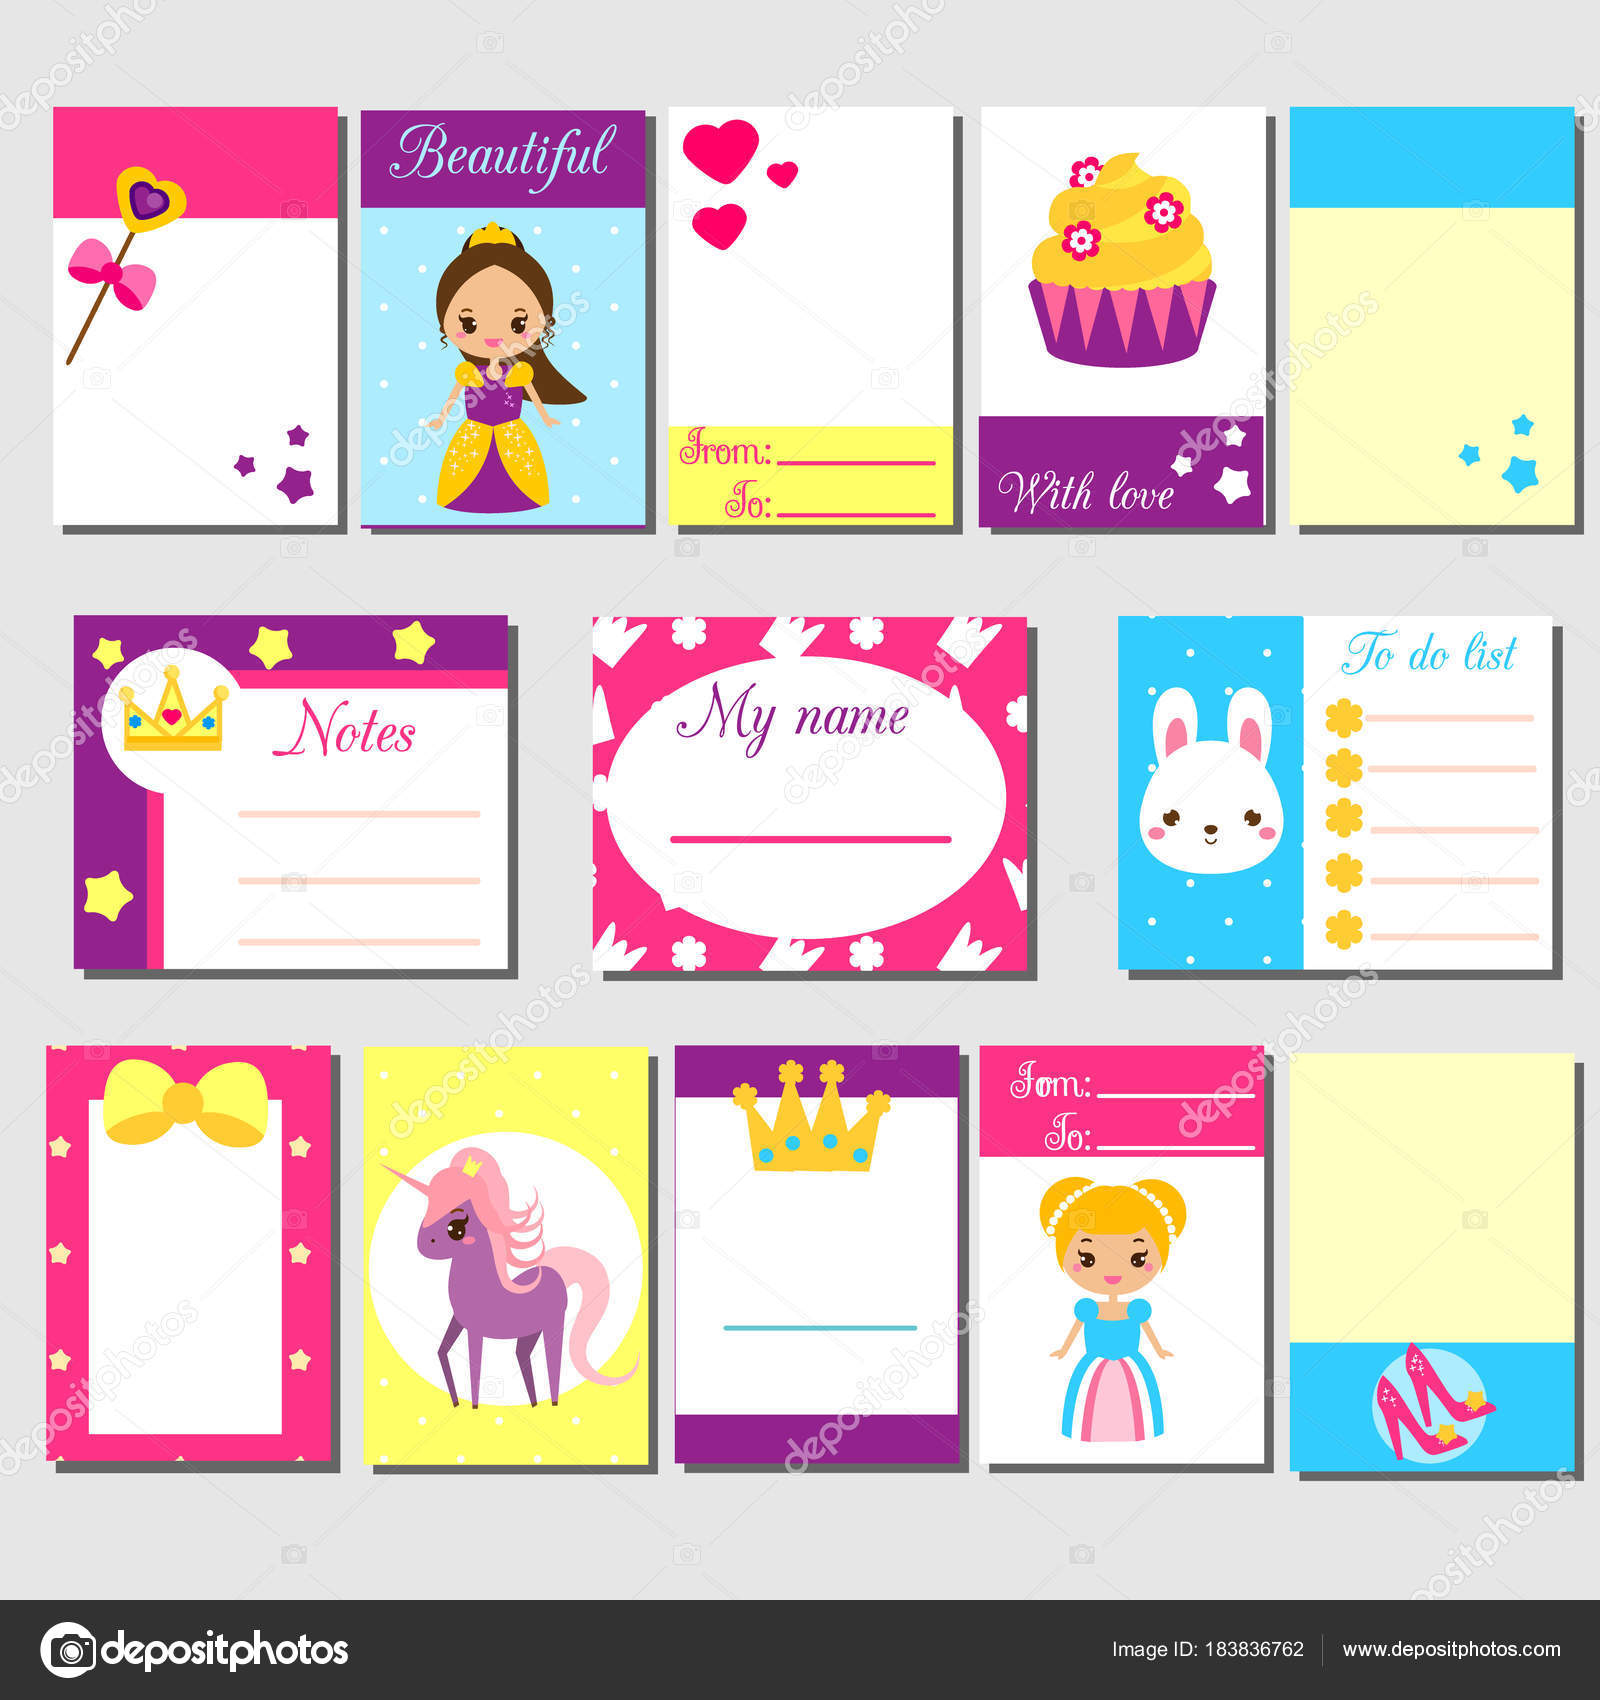 cards, sticky notes, stickers, labels, tags, with cute princess